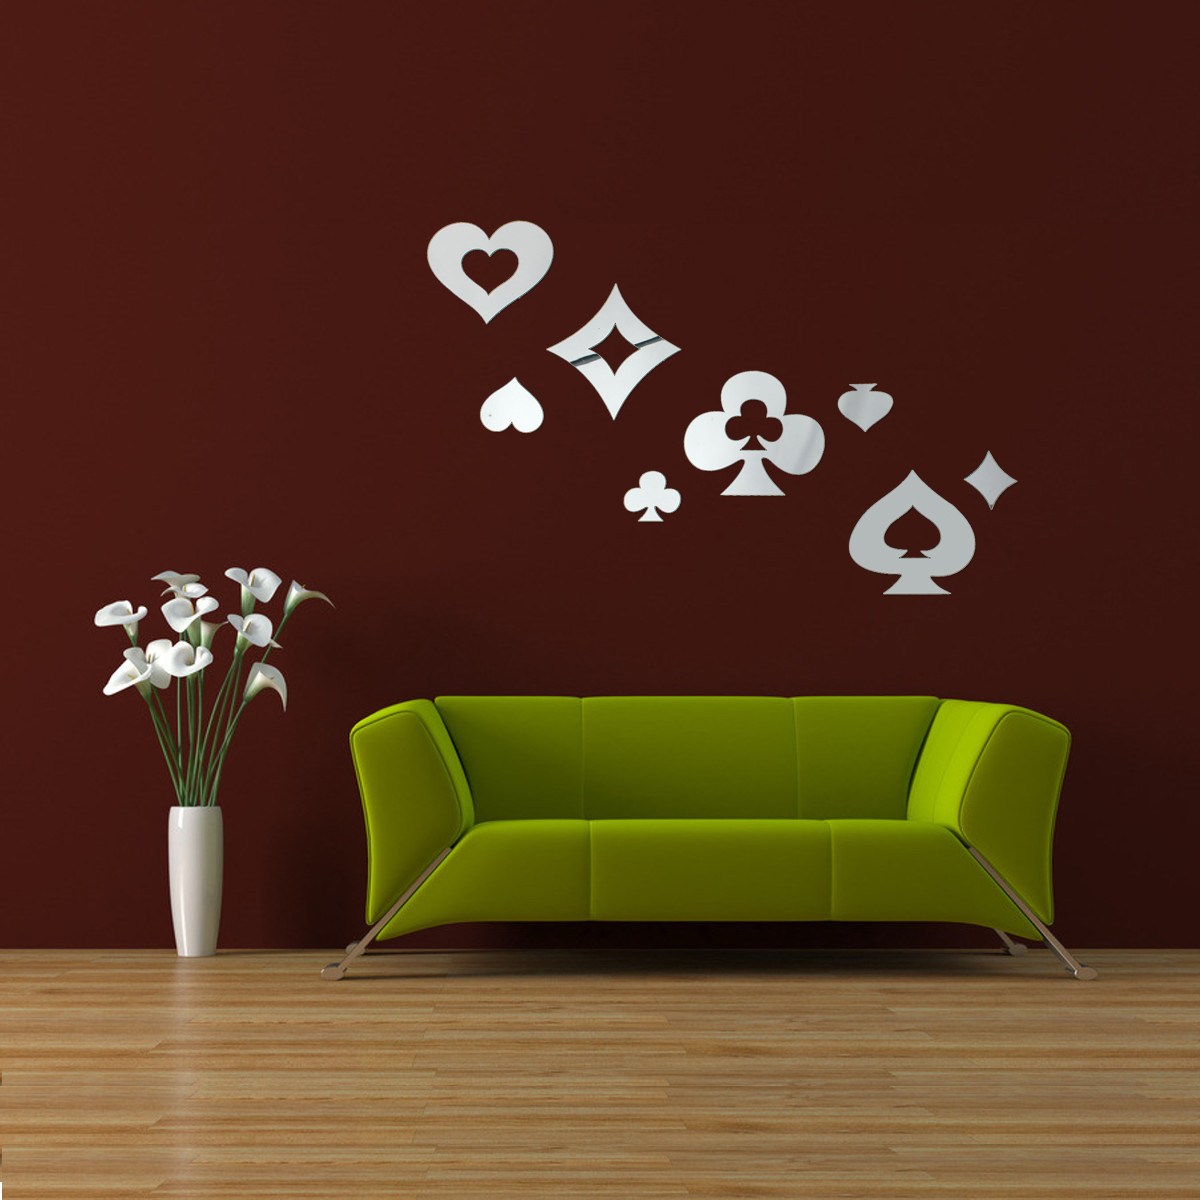 murales pegatinas pared sticker espejo design diy pared de